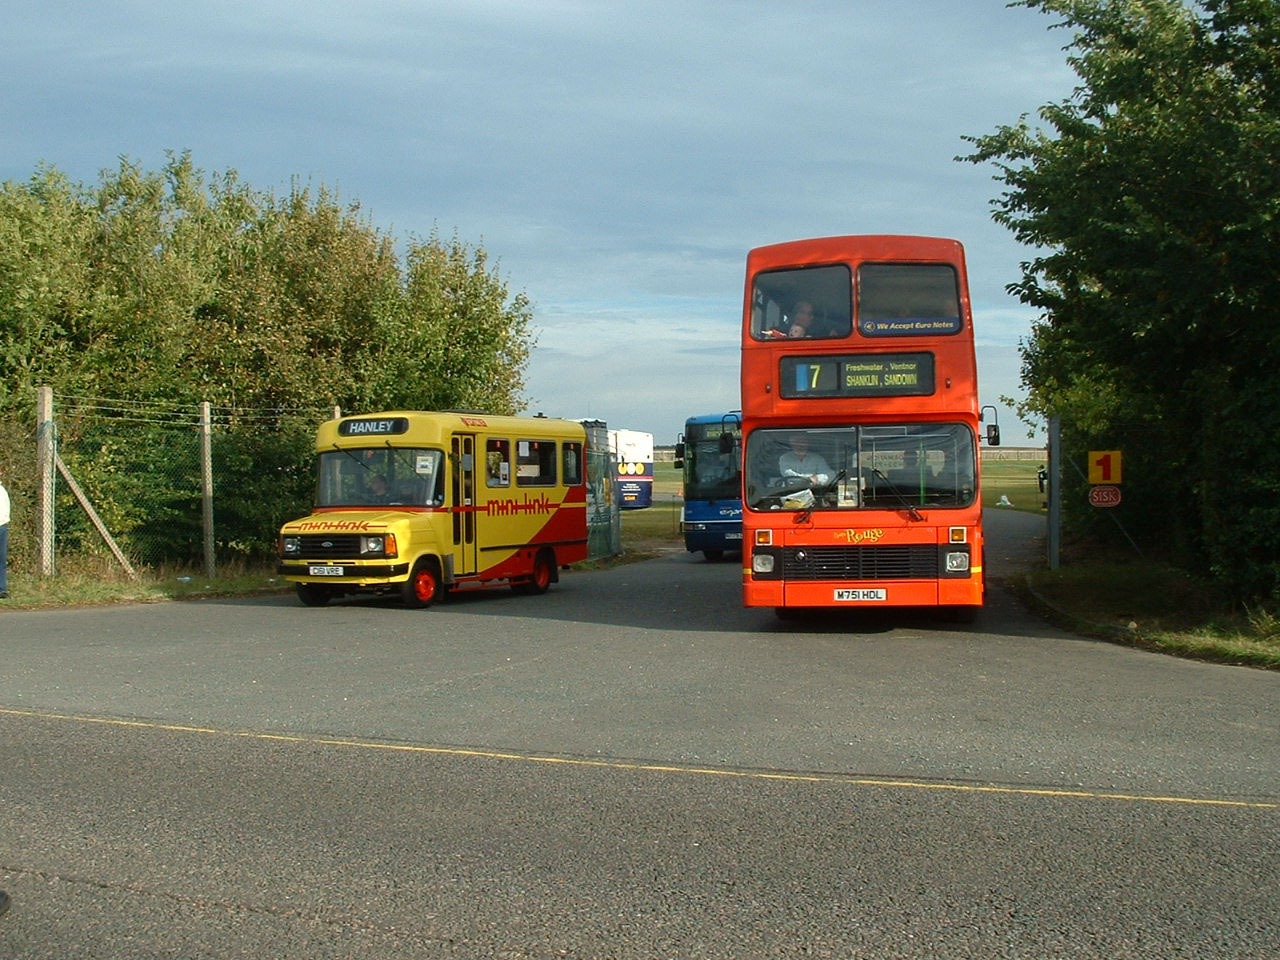 Southern Vectis Showbus Bus Iamge Gallery South Of England